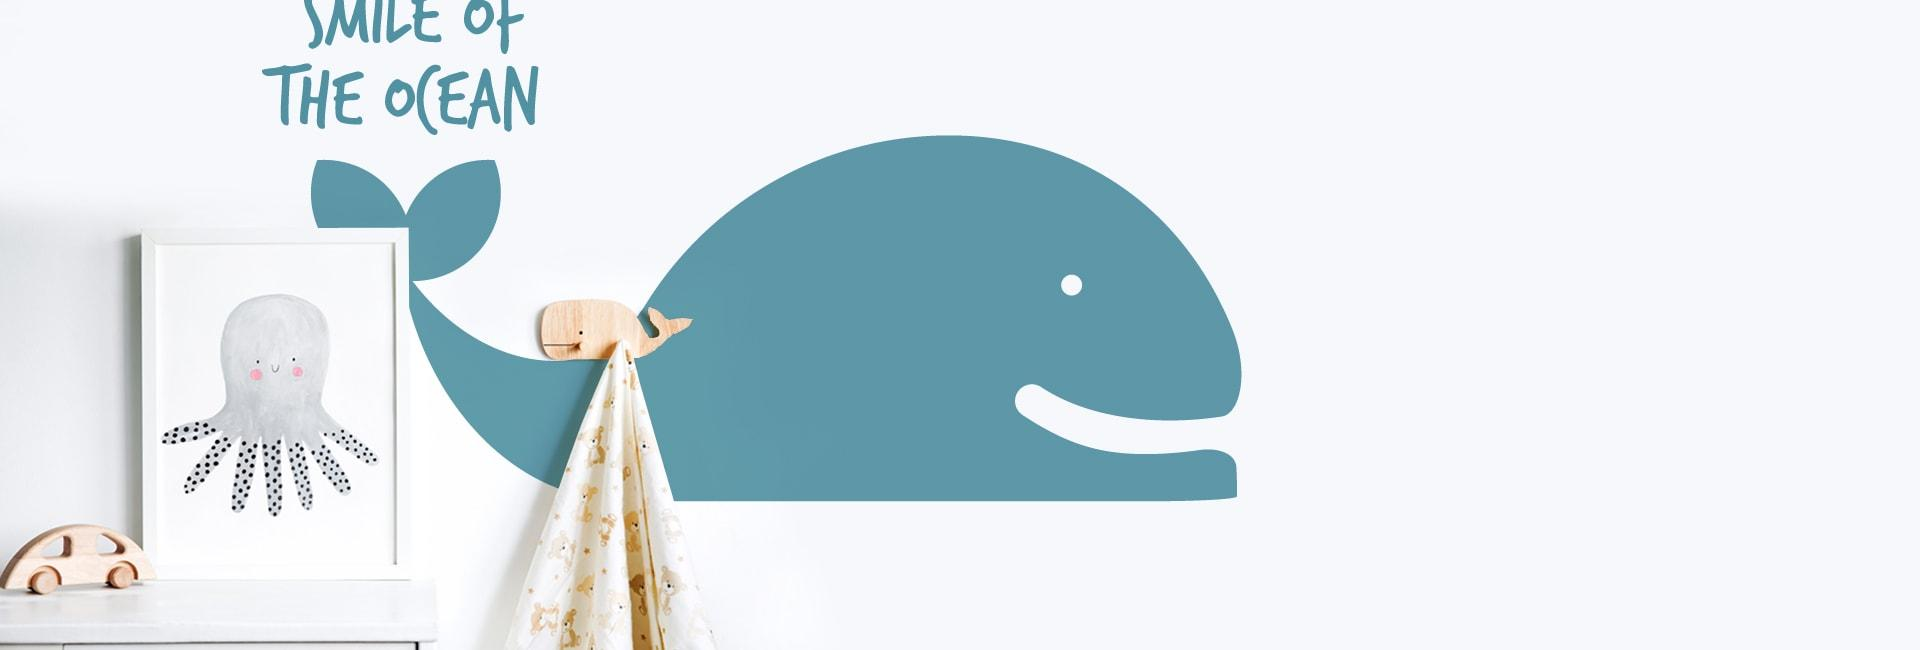 Moodwindow_muursticker_kinderkamer_walvis_smile_of_the_ocean_quote_2019-min.jpg